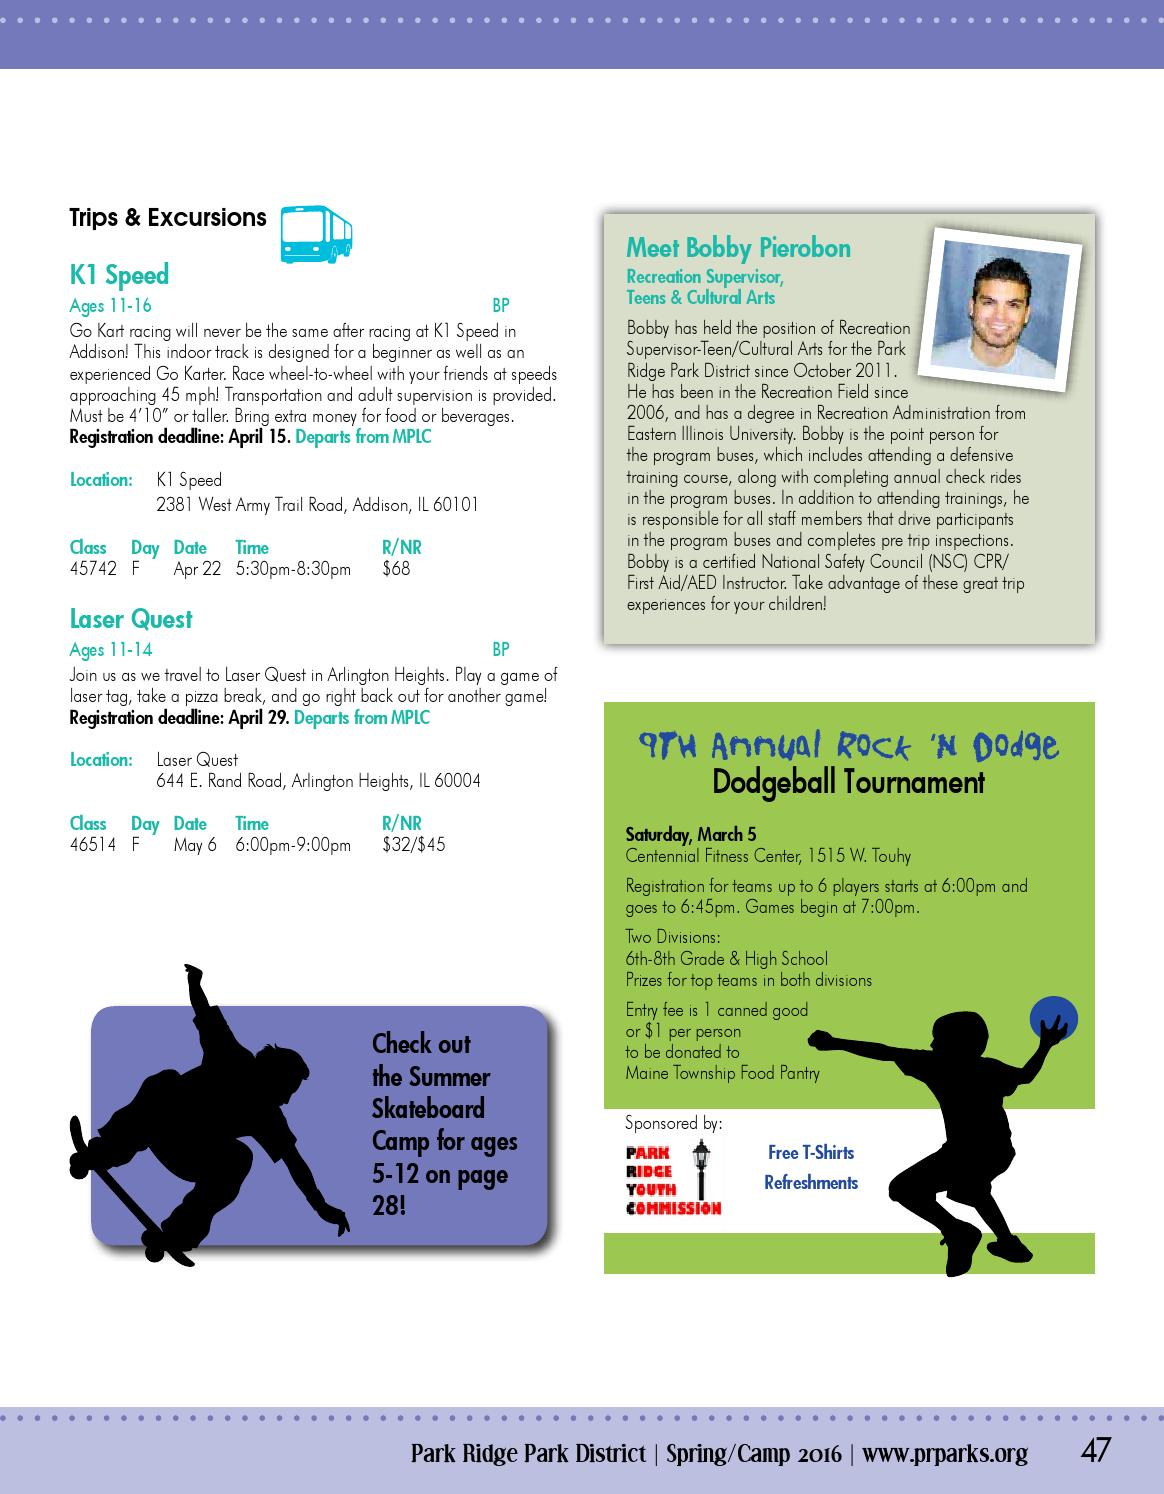 Spring Camp Brochure 2016 by Park Ridge Park District - issuu